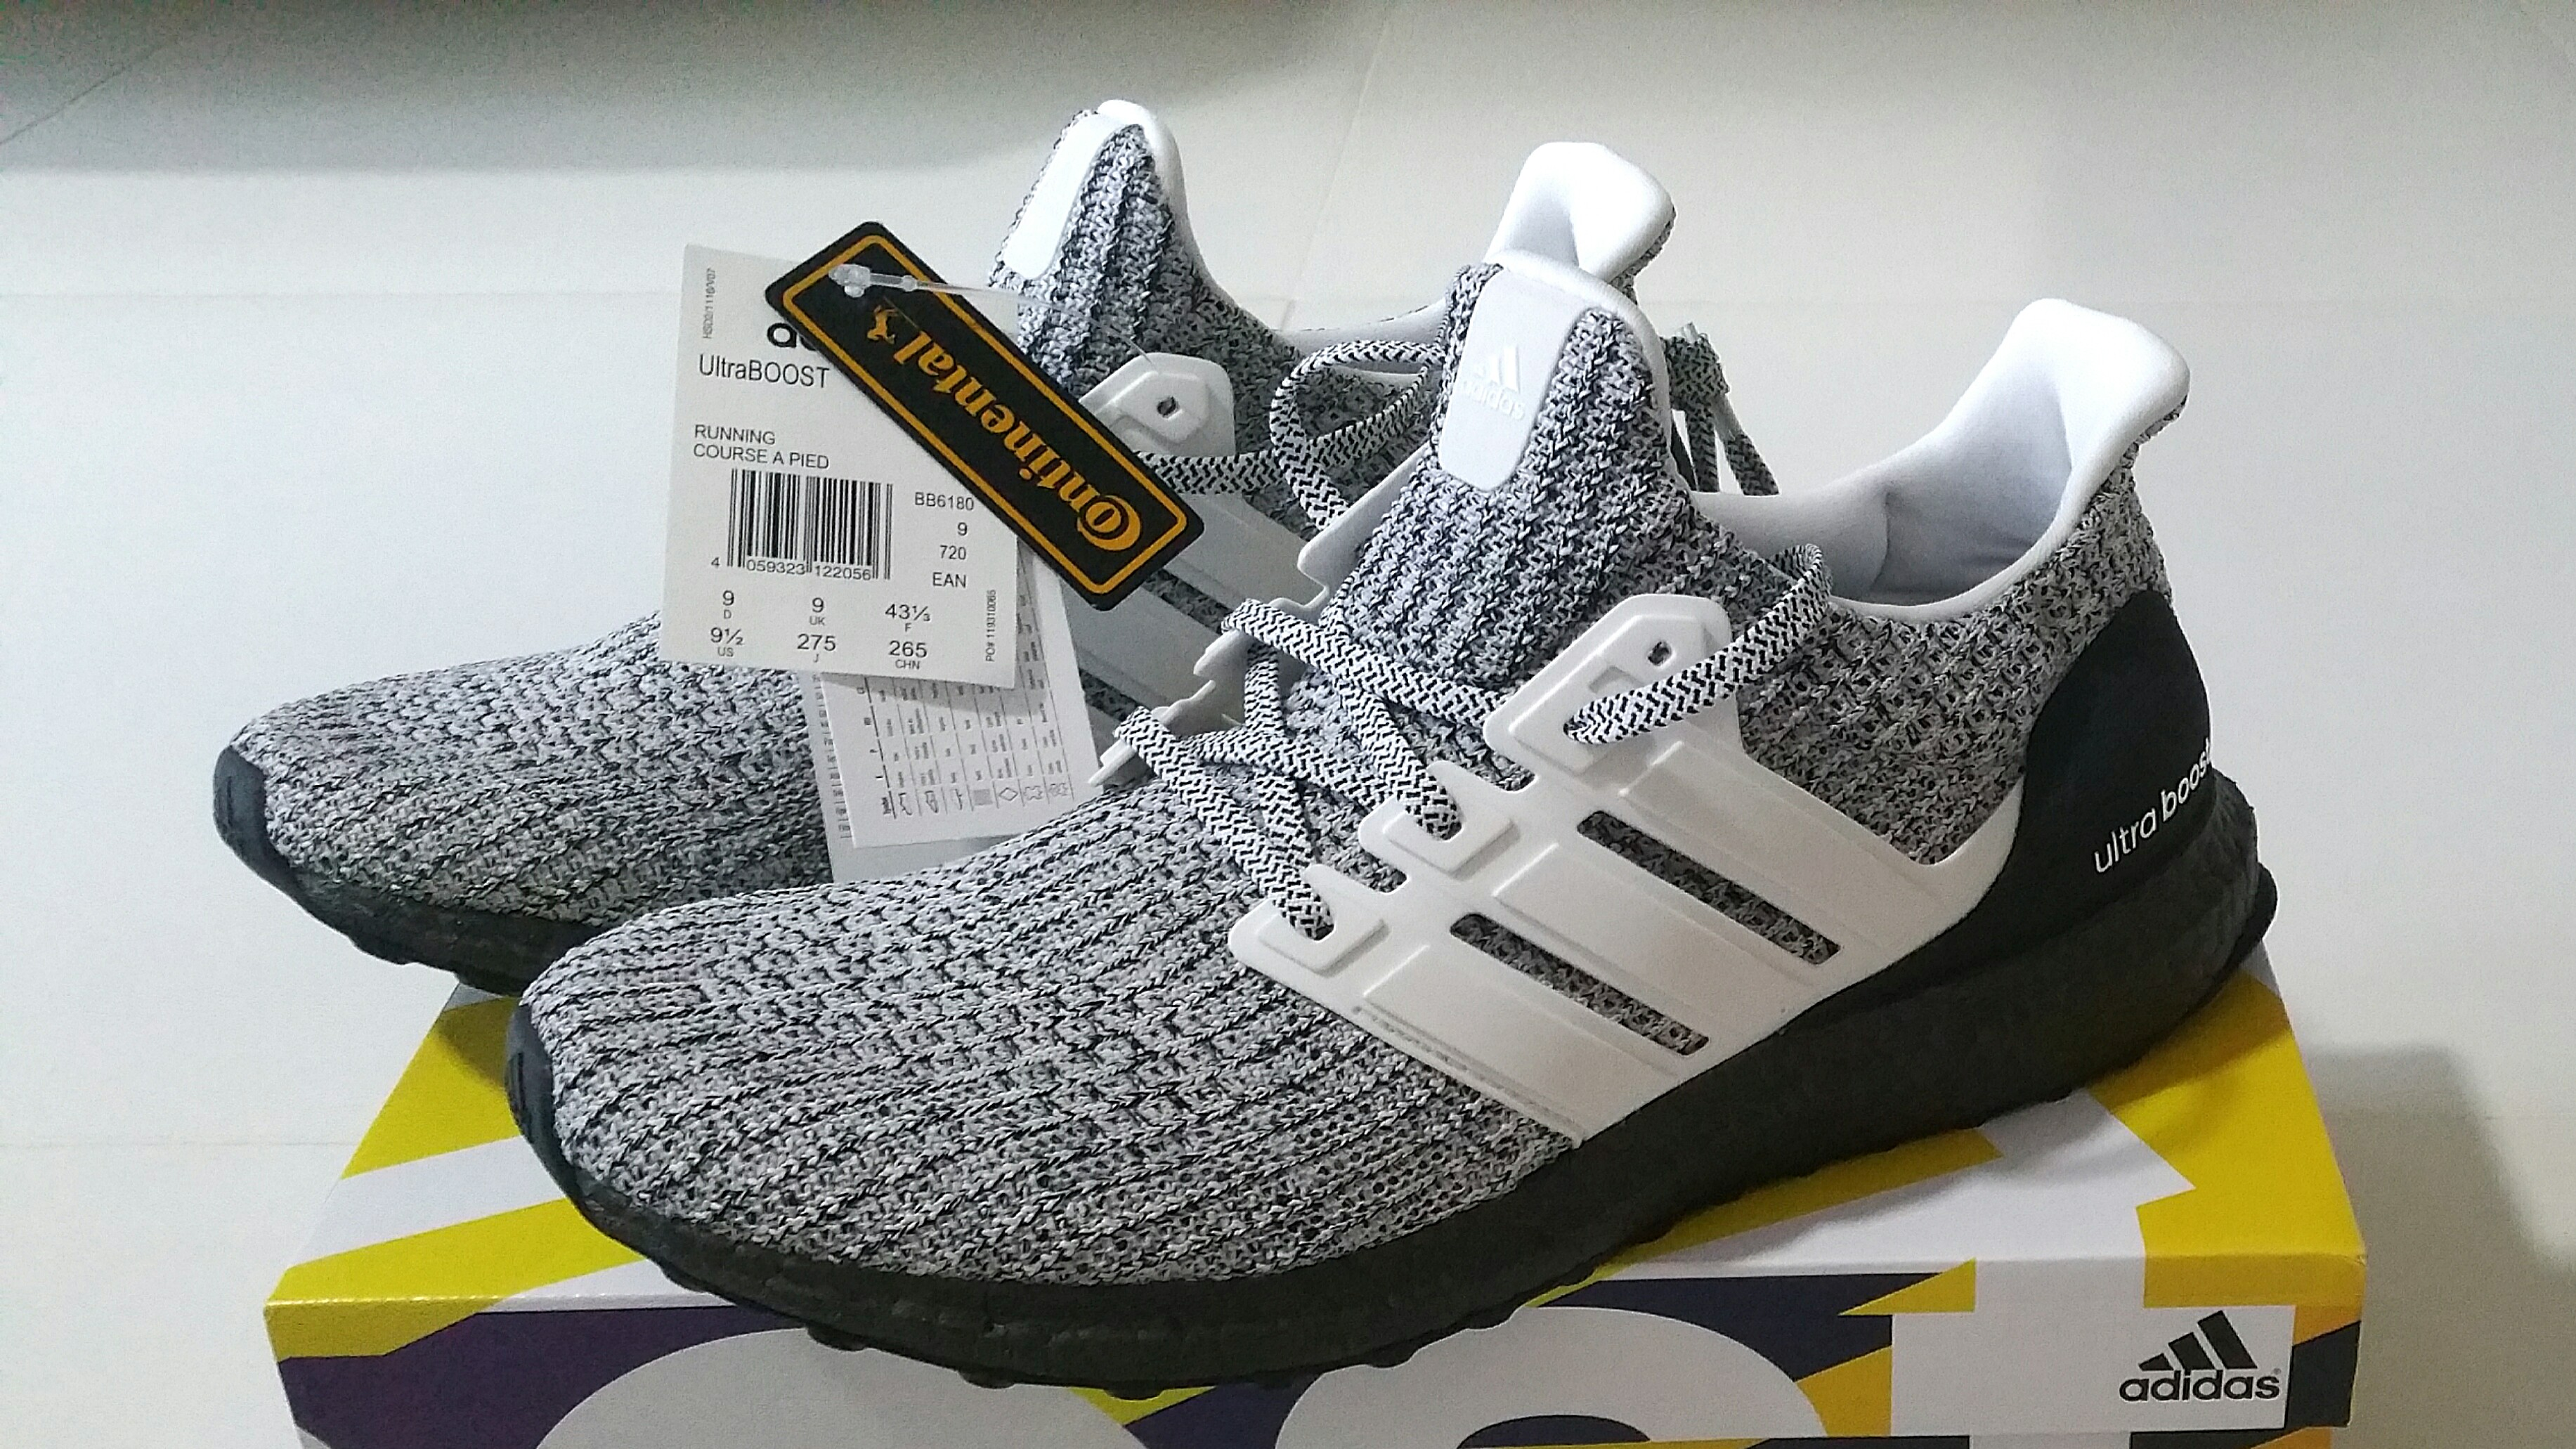 cfcba195ae4c1 Adidas Ultra Boost Ultraboost 4.0 Cookies Cream Oreo Black White ...